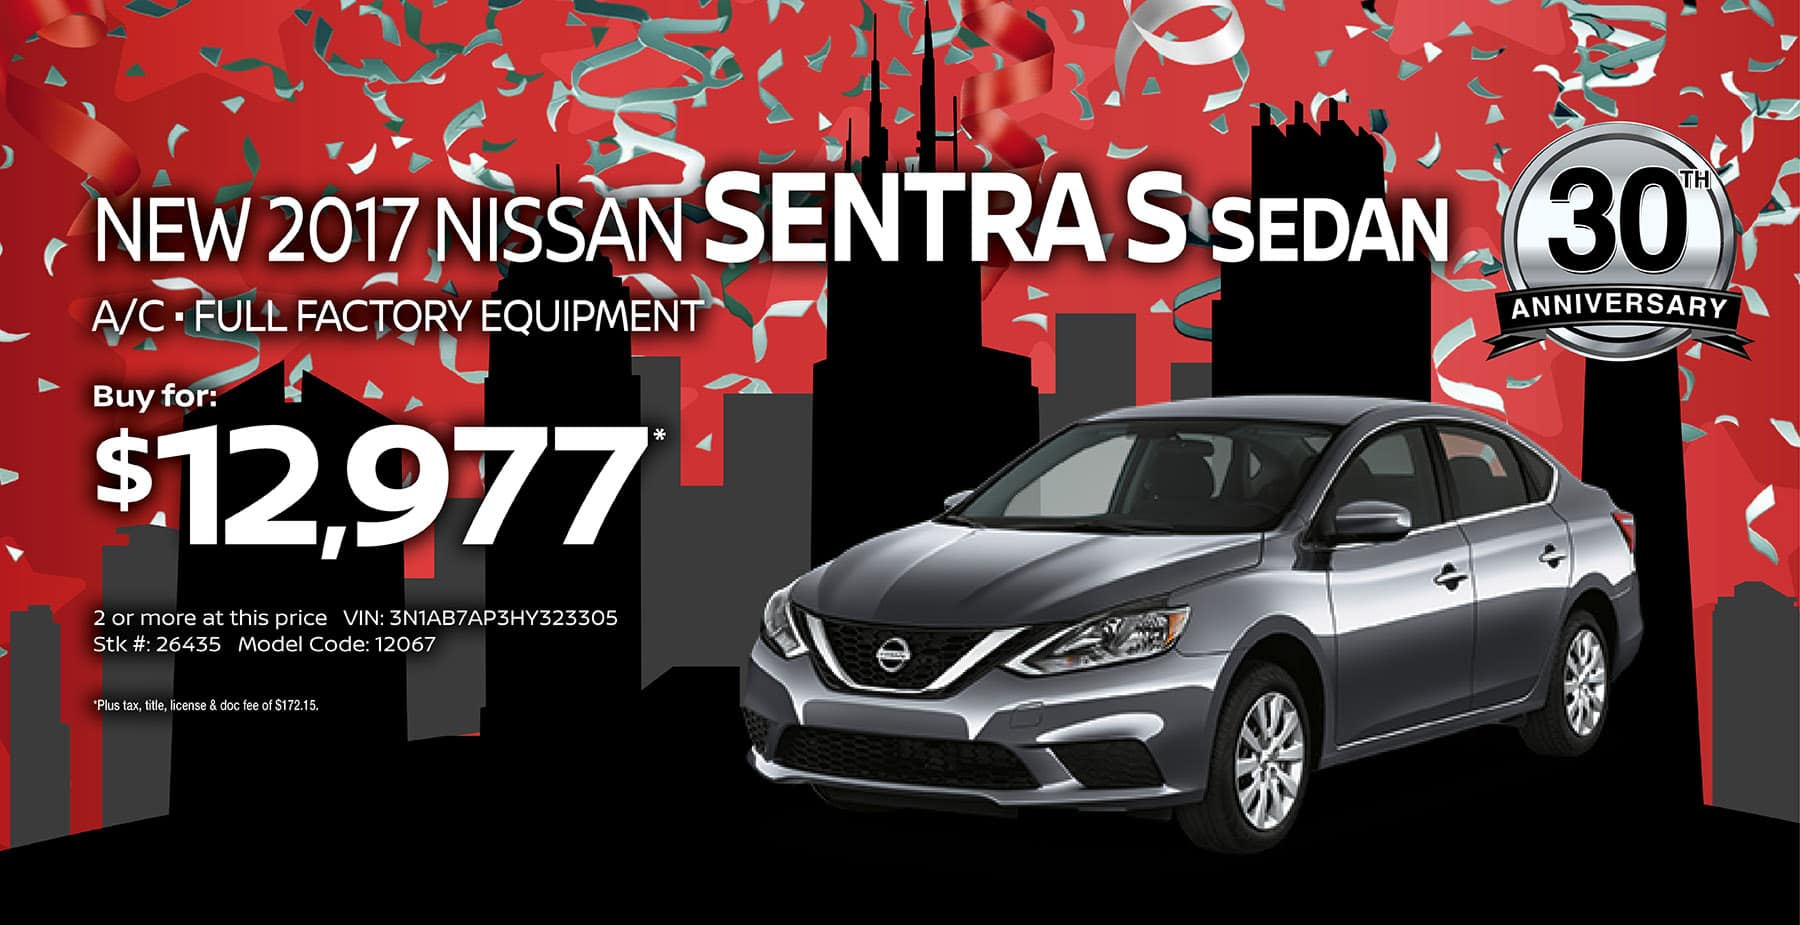 2017 Nissan Versa September Sale at Star Nissan